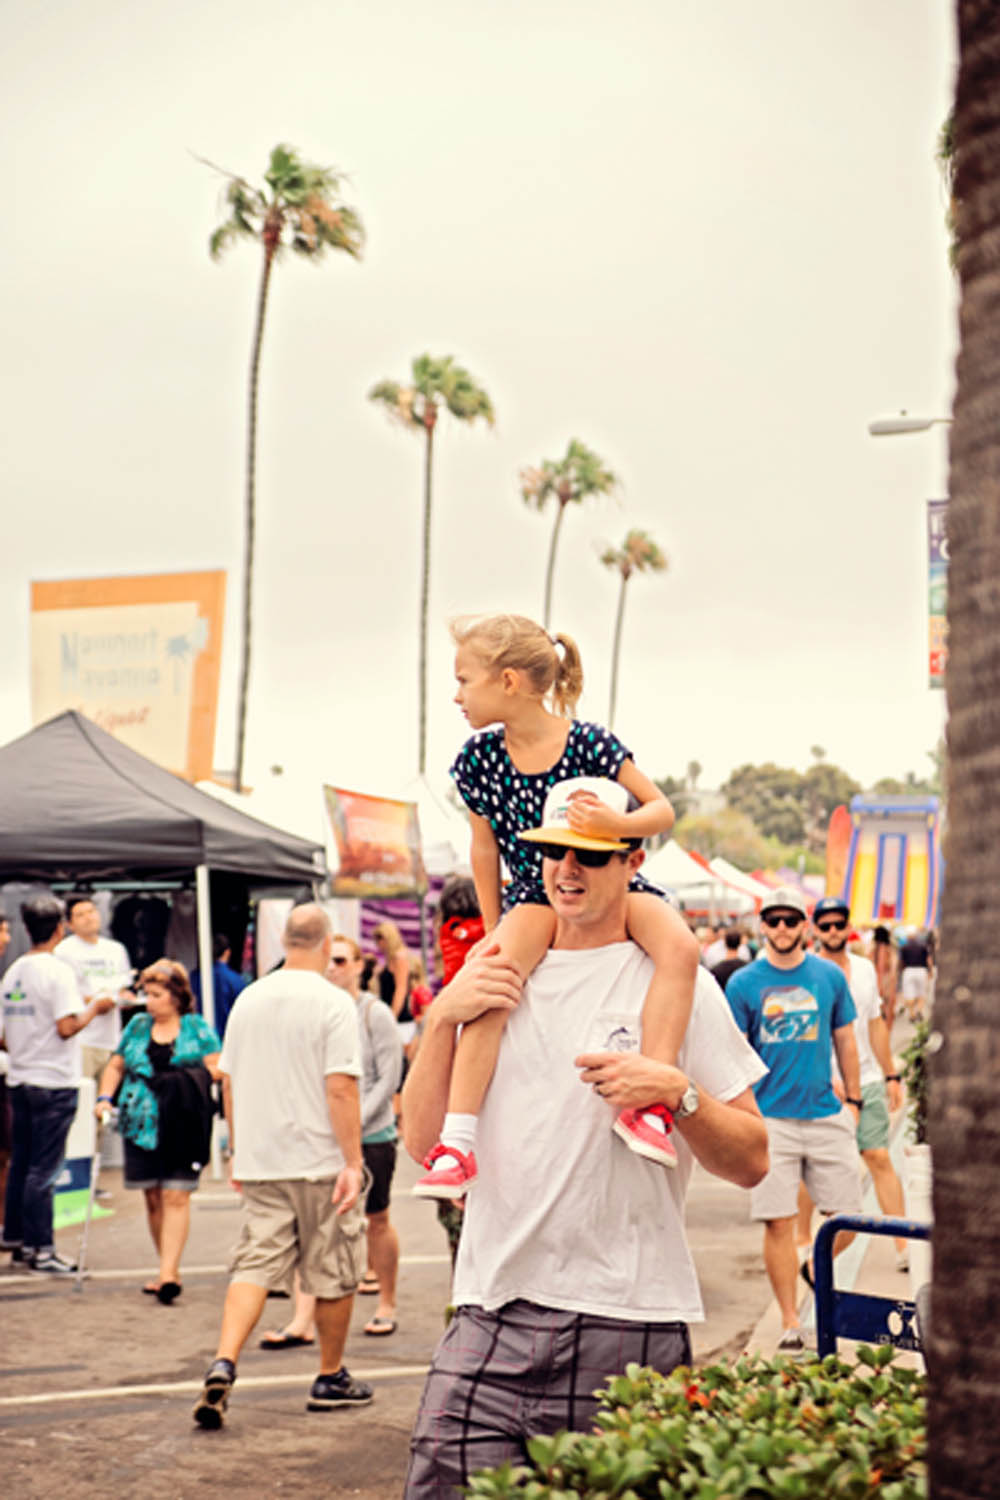 36th Annual Ocean Beach Street Fair and Chili Cook-Off - Official event photos by Troy Orem Photography